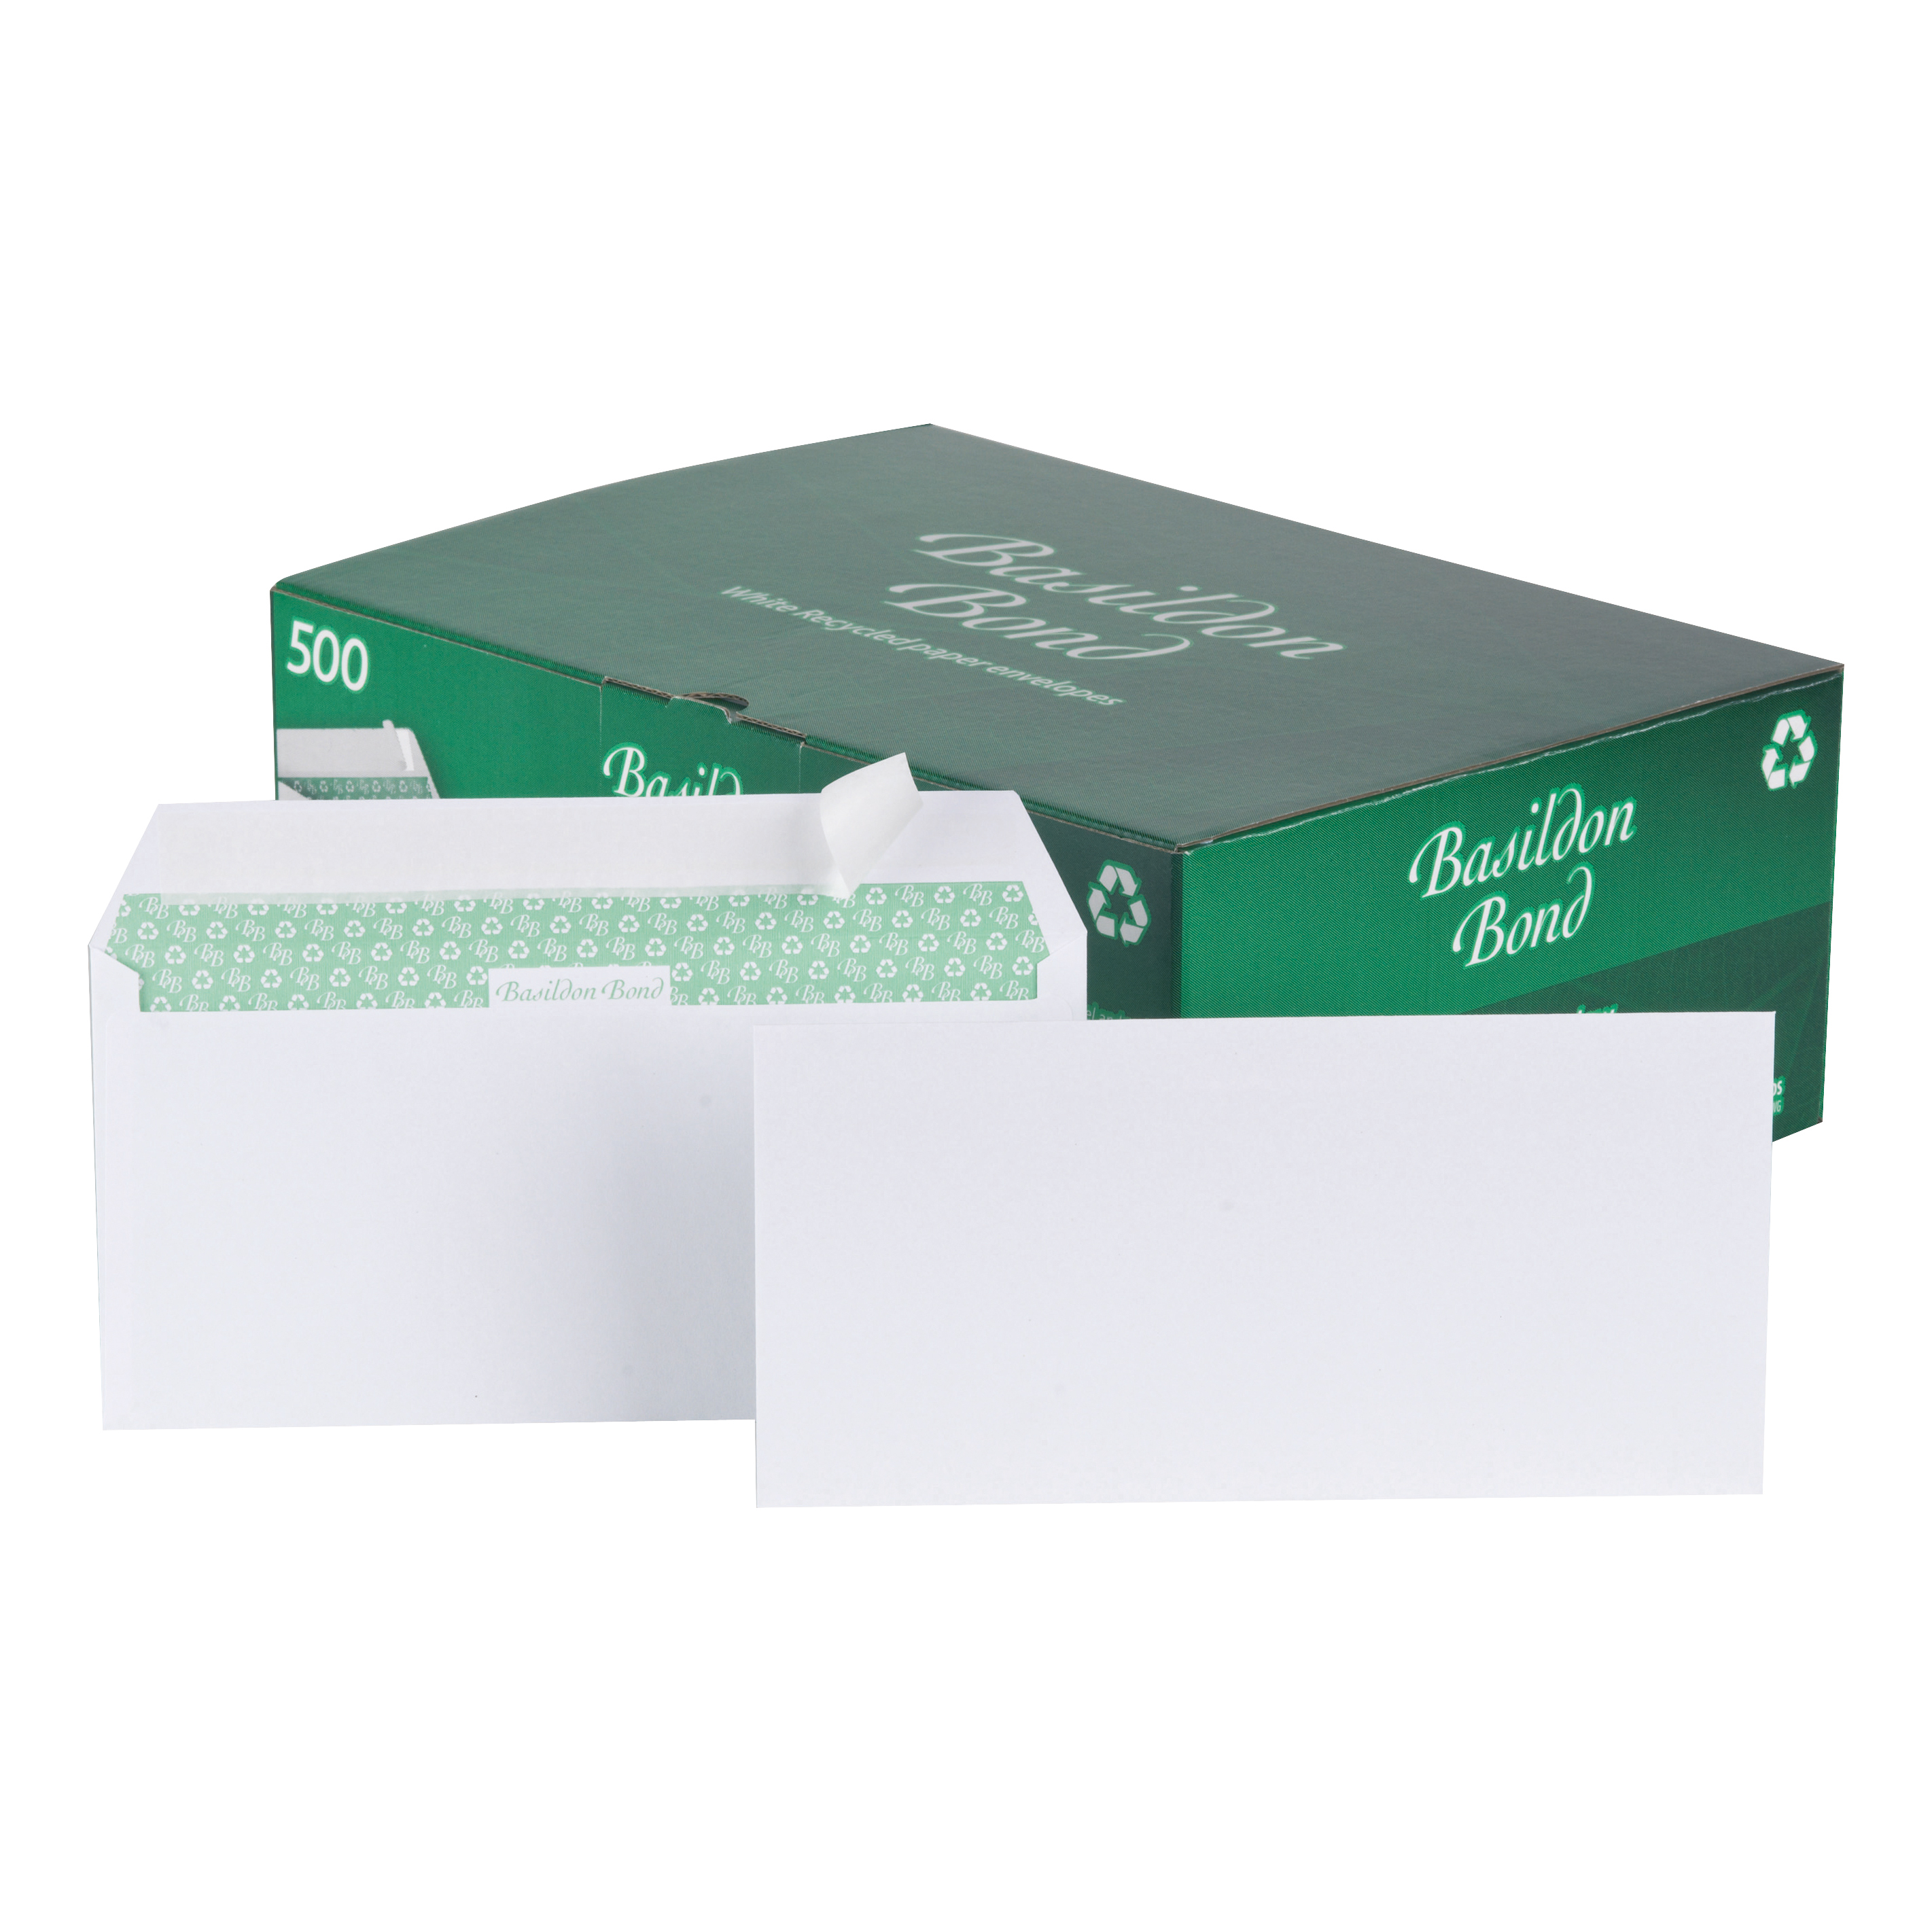 DL Basildon Bond Envelopes Recycled Wallet Peel & Seal 120gsm DL White Ref C80116 Pack 500